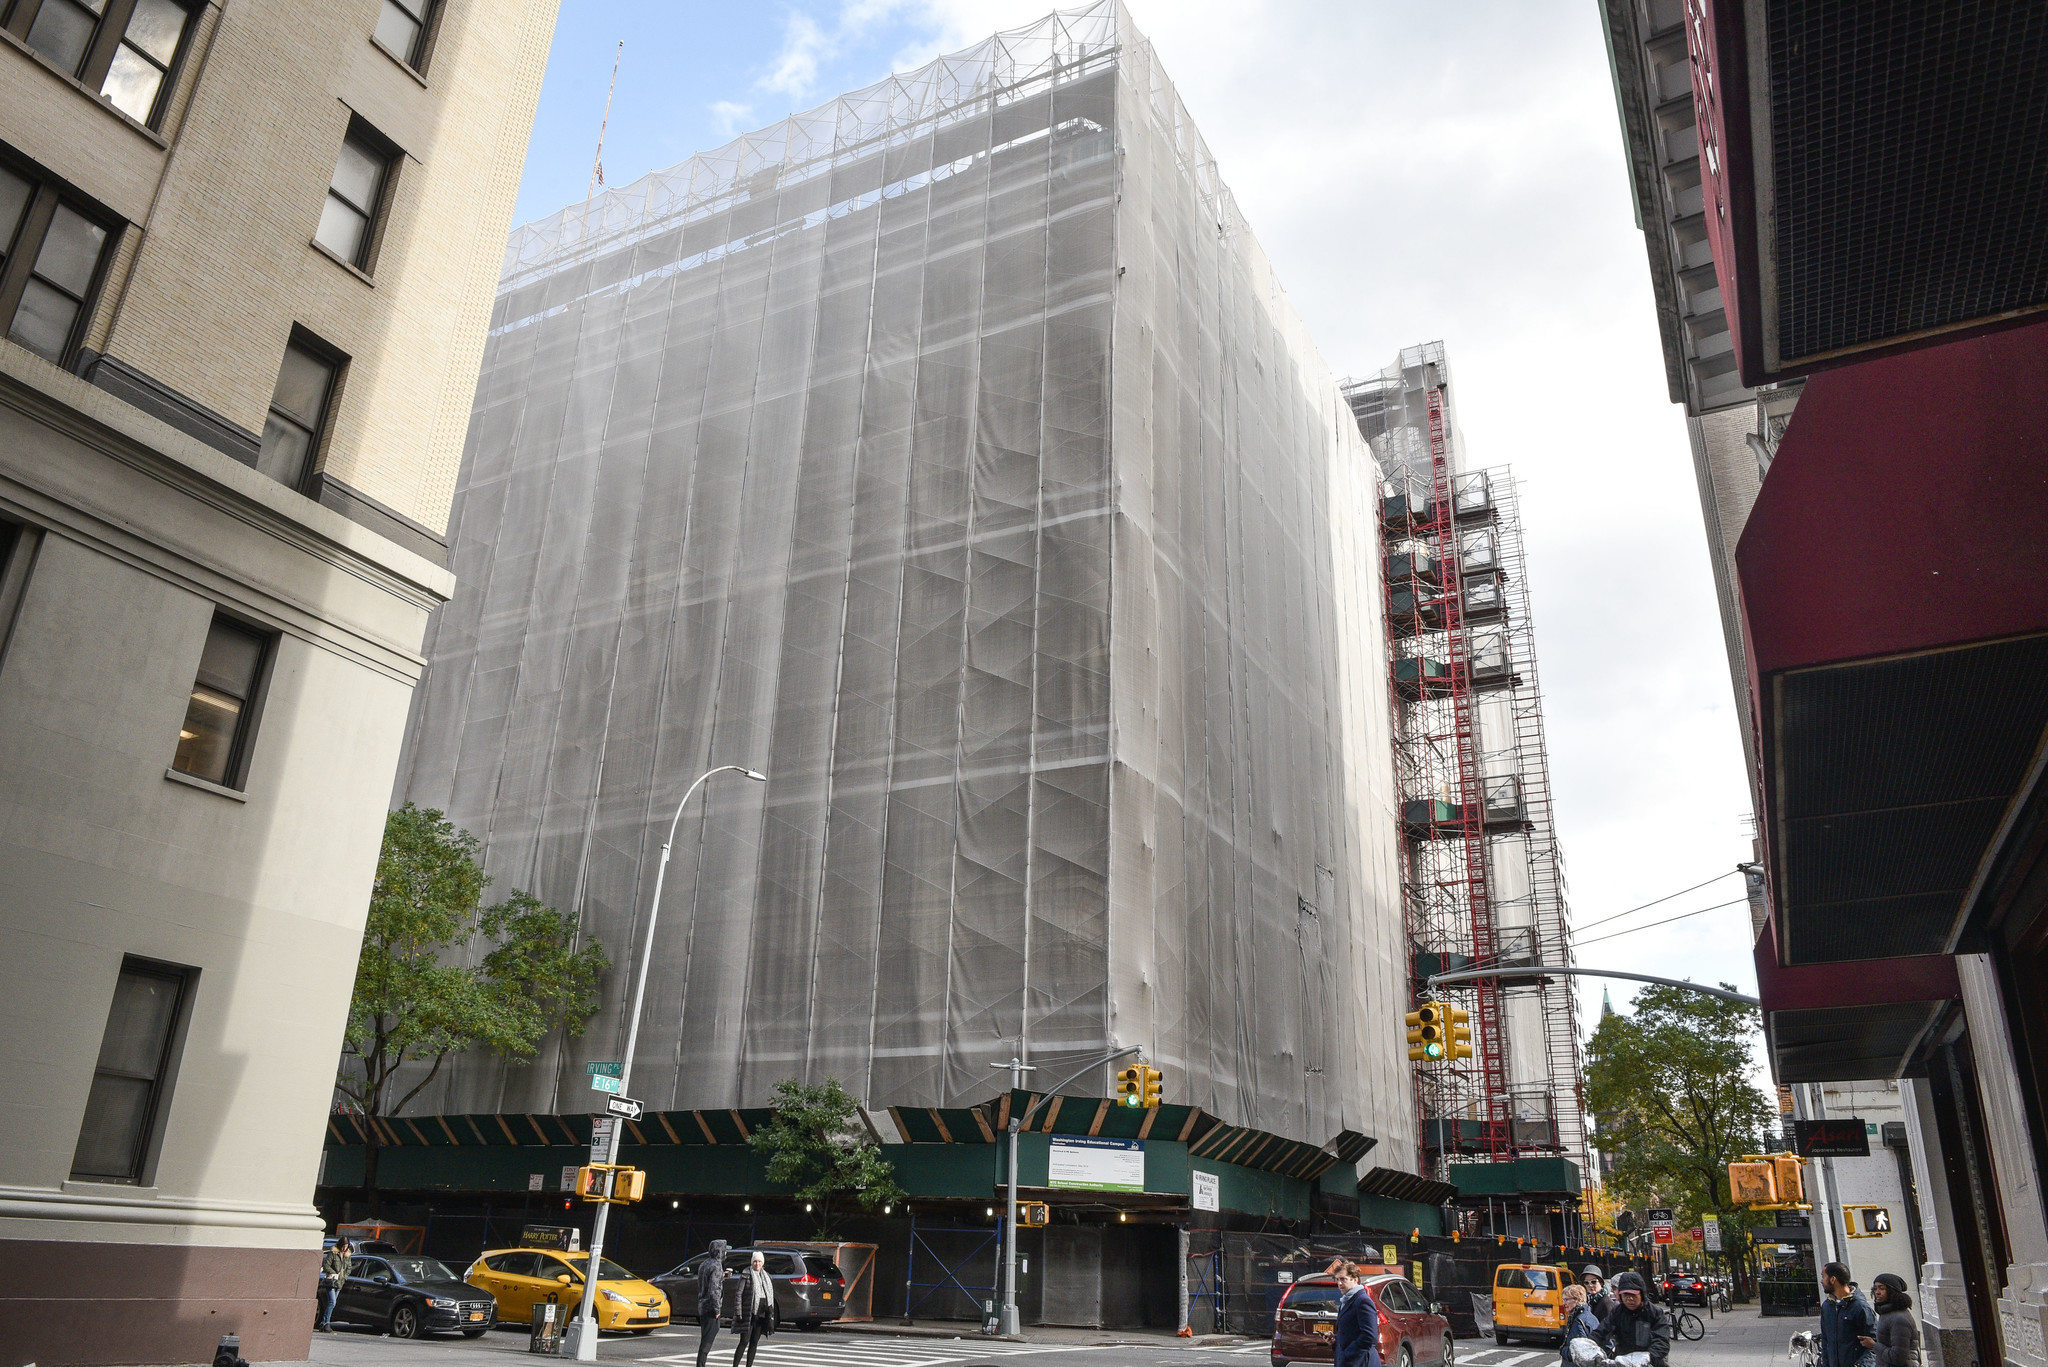 Gramercy residents furious over construction noise, garbage at Washington Irving HS | New York Daily News